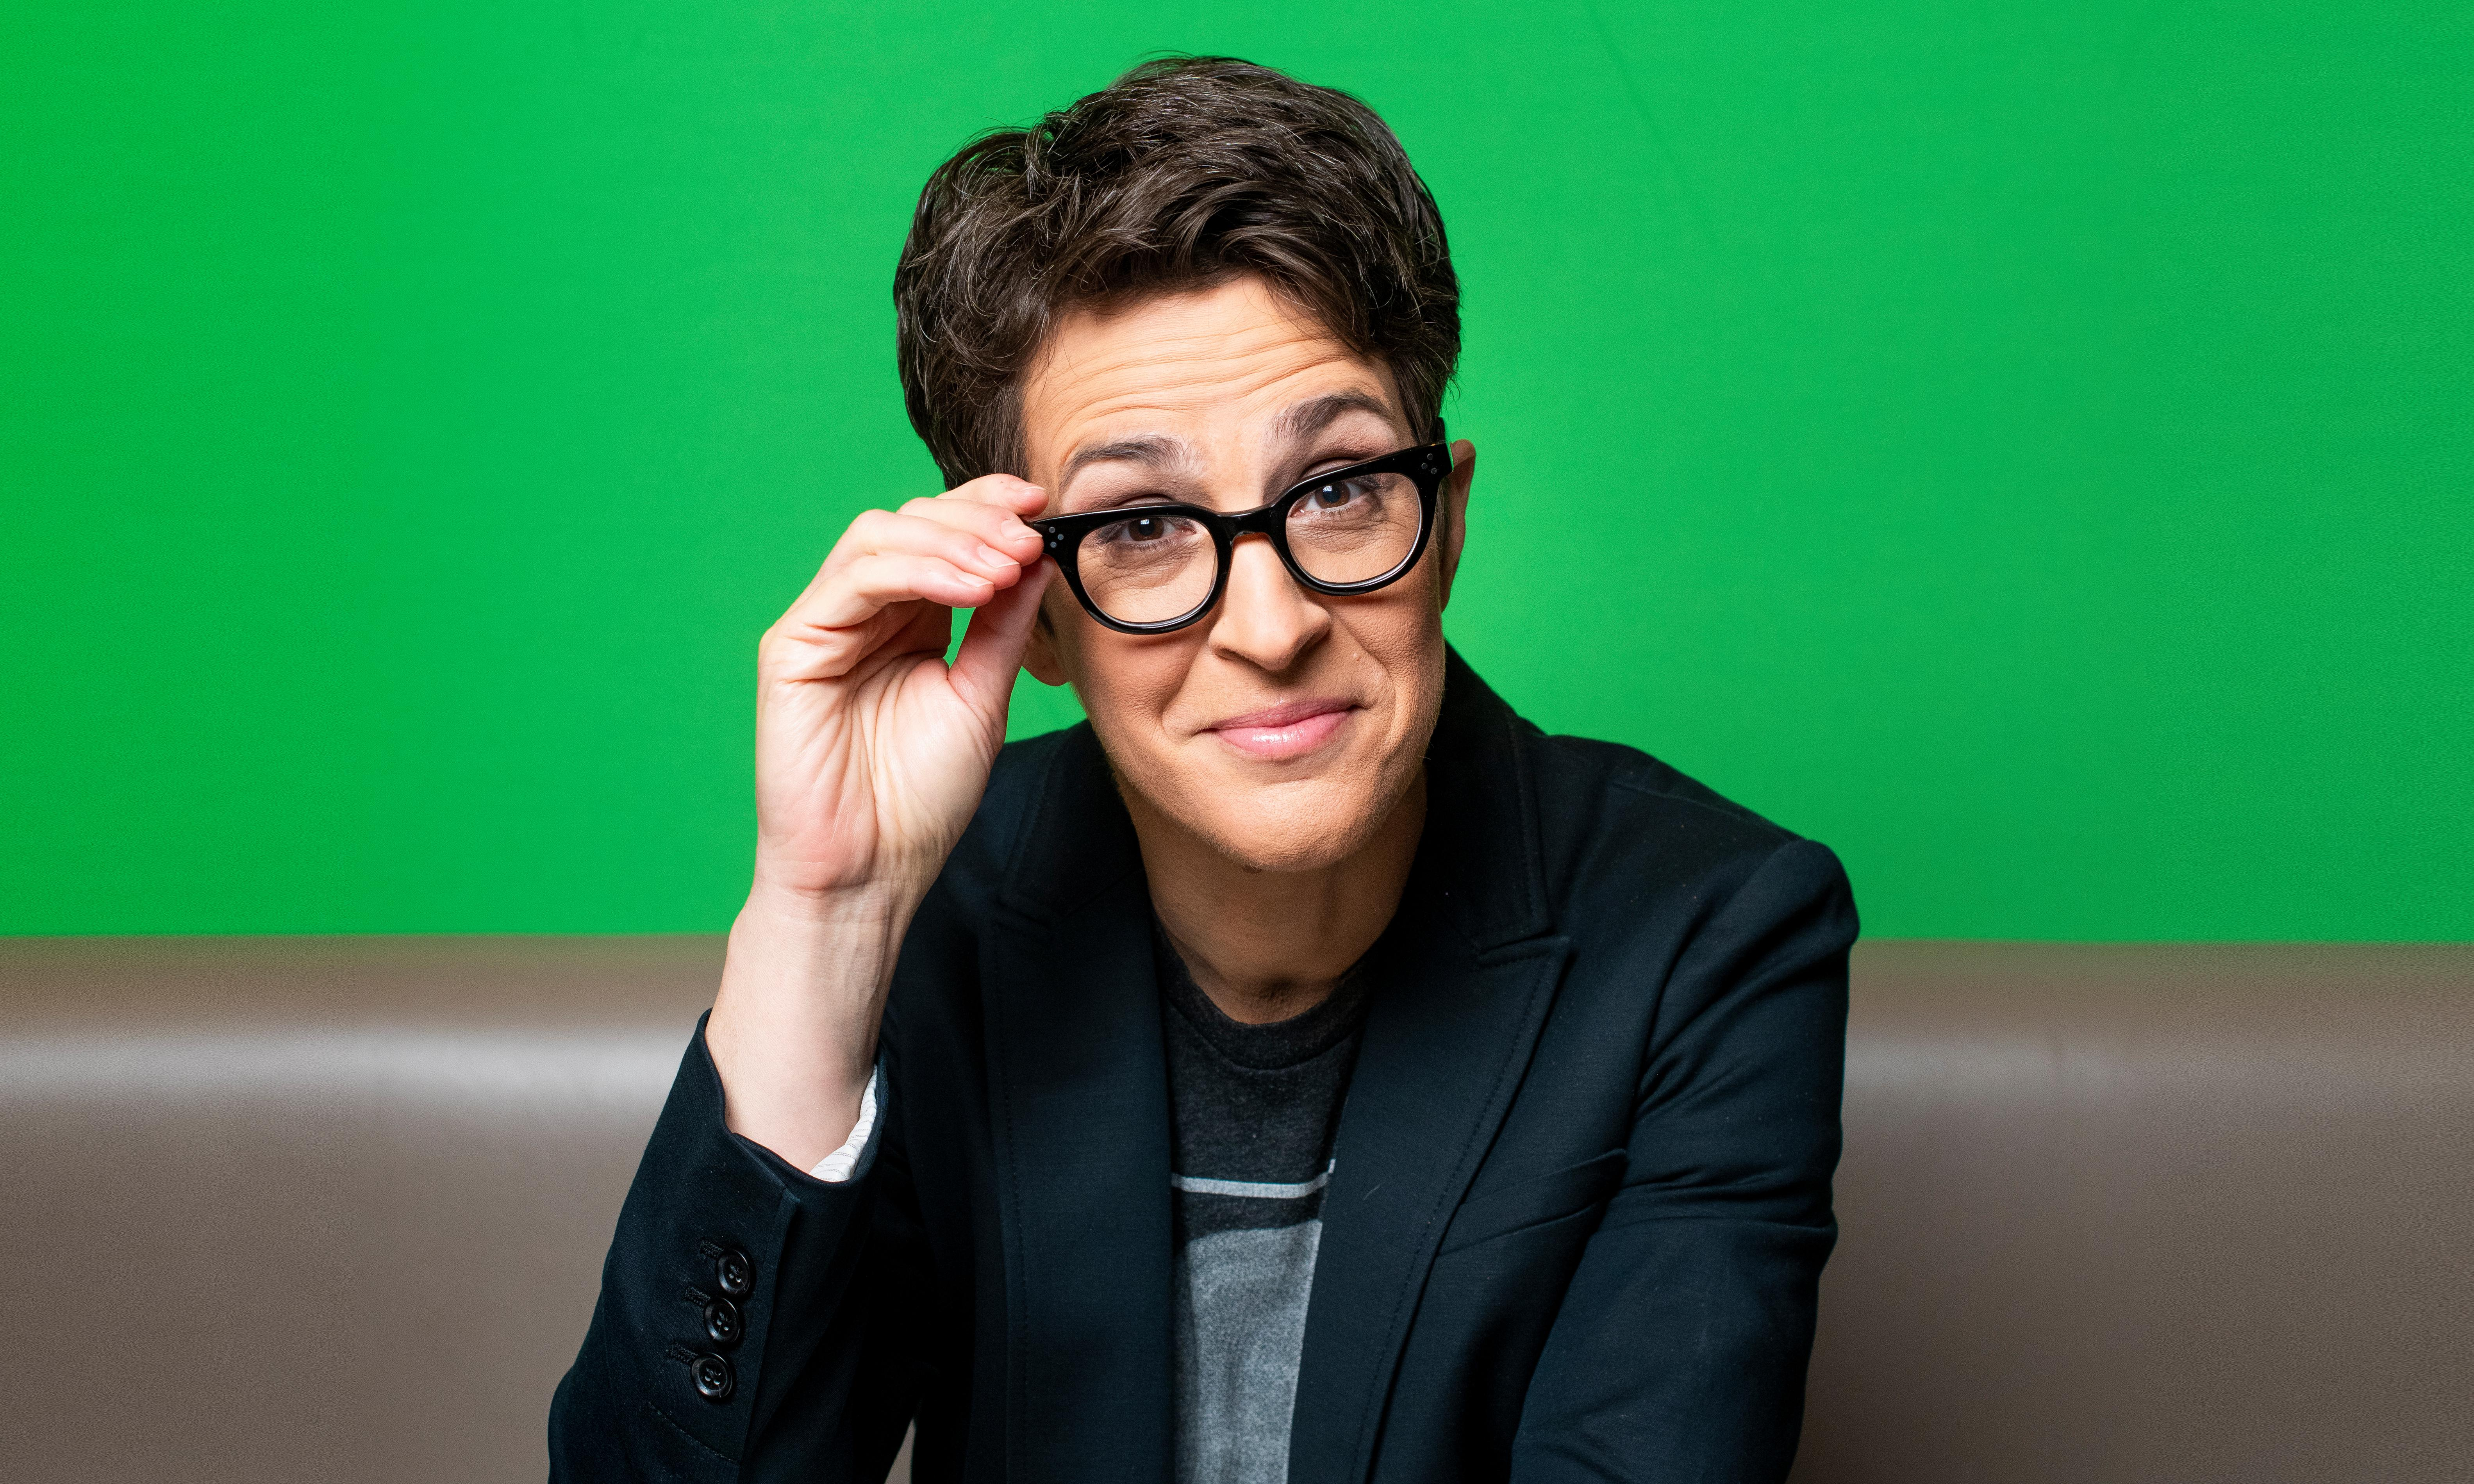 Rachel Maddow on her critics: 'Your hatred makes me stronger. Come on! Give me more!'